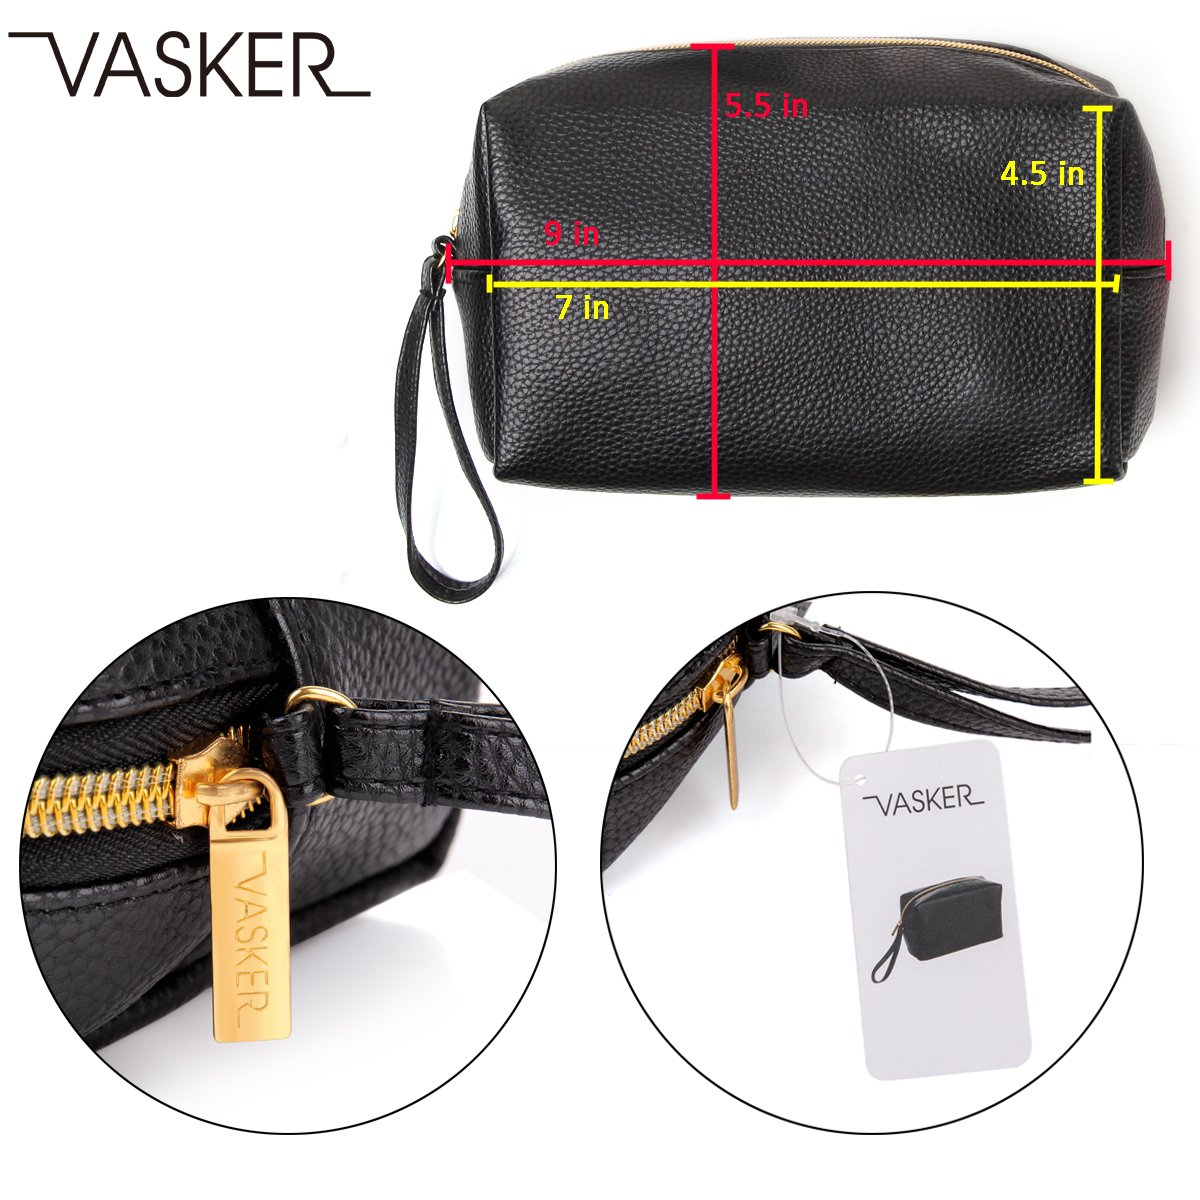 VASKER PU Leather Makeup Bag Handy Cosmetic Pouch Travel Portable Handbag Purse Toiletry Storage Bag Large Organizer with Zipper Women by VASKER (Image #4)